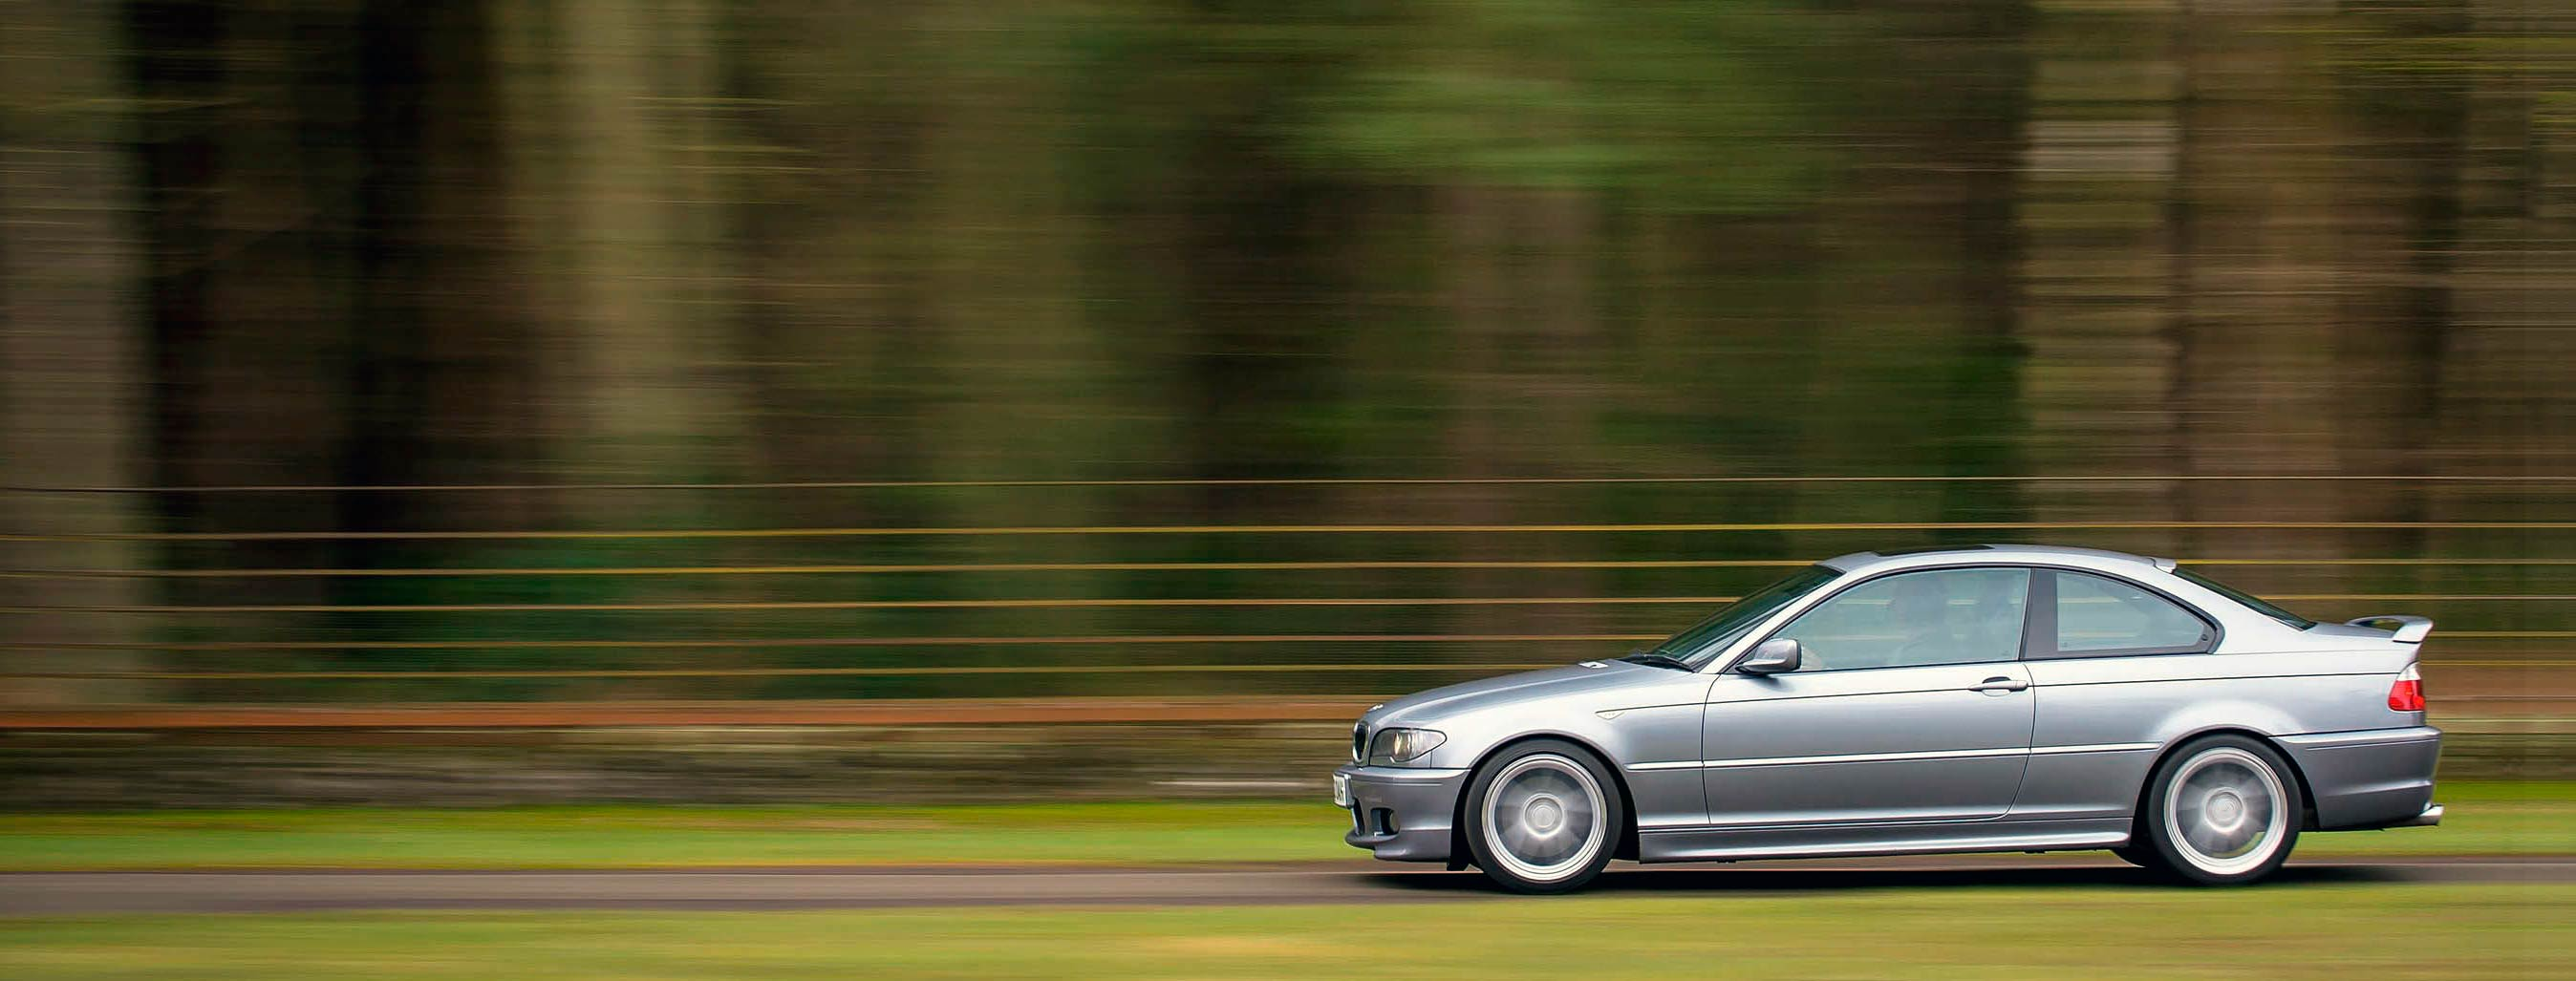 2004 ac schnitzer acs3 x3 images hd cars wallpaper 2003 ac schnitzer acs3 3series e46 m3 sport images hd cars wallpaper supercharged bmw e46 330i vanachro Image collections